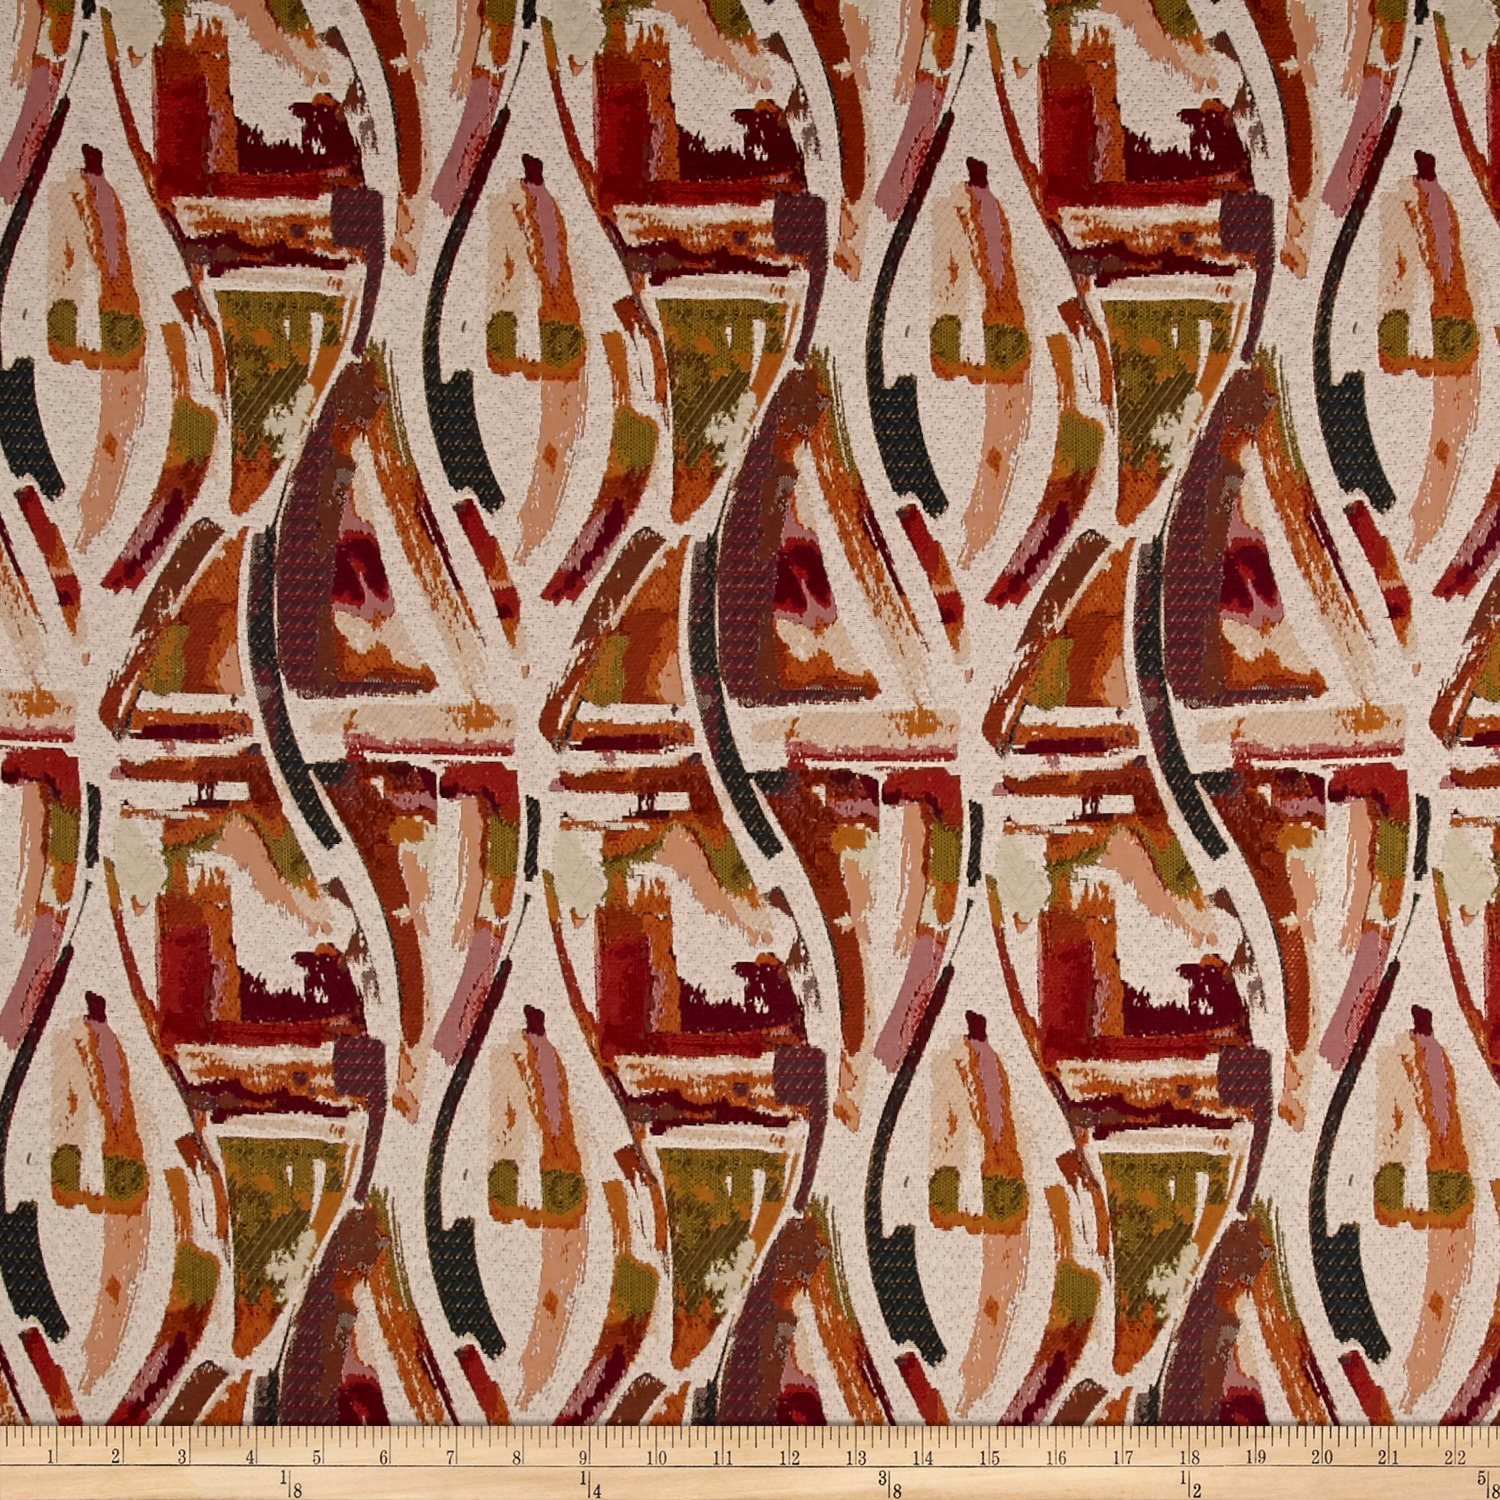 Richloom Dauntles Jacquard Blossom Fabric by TNT in USA